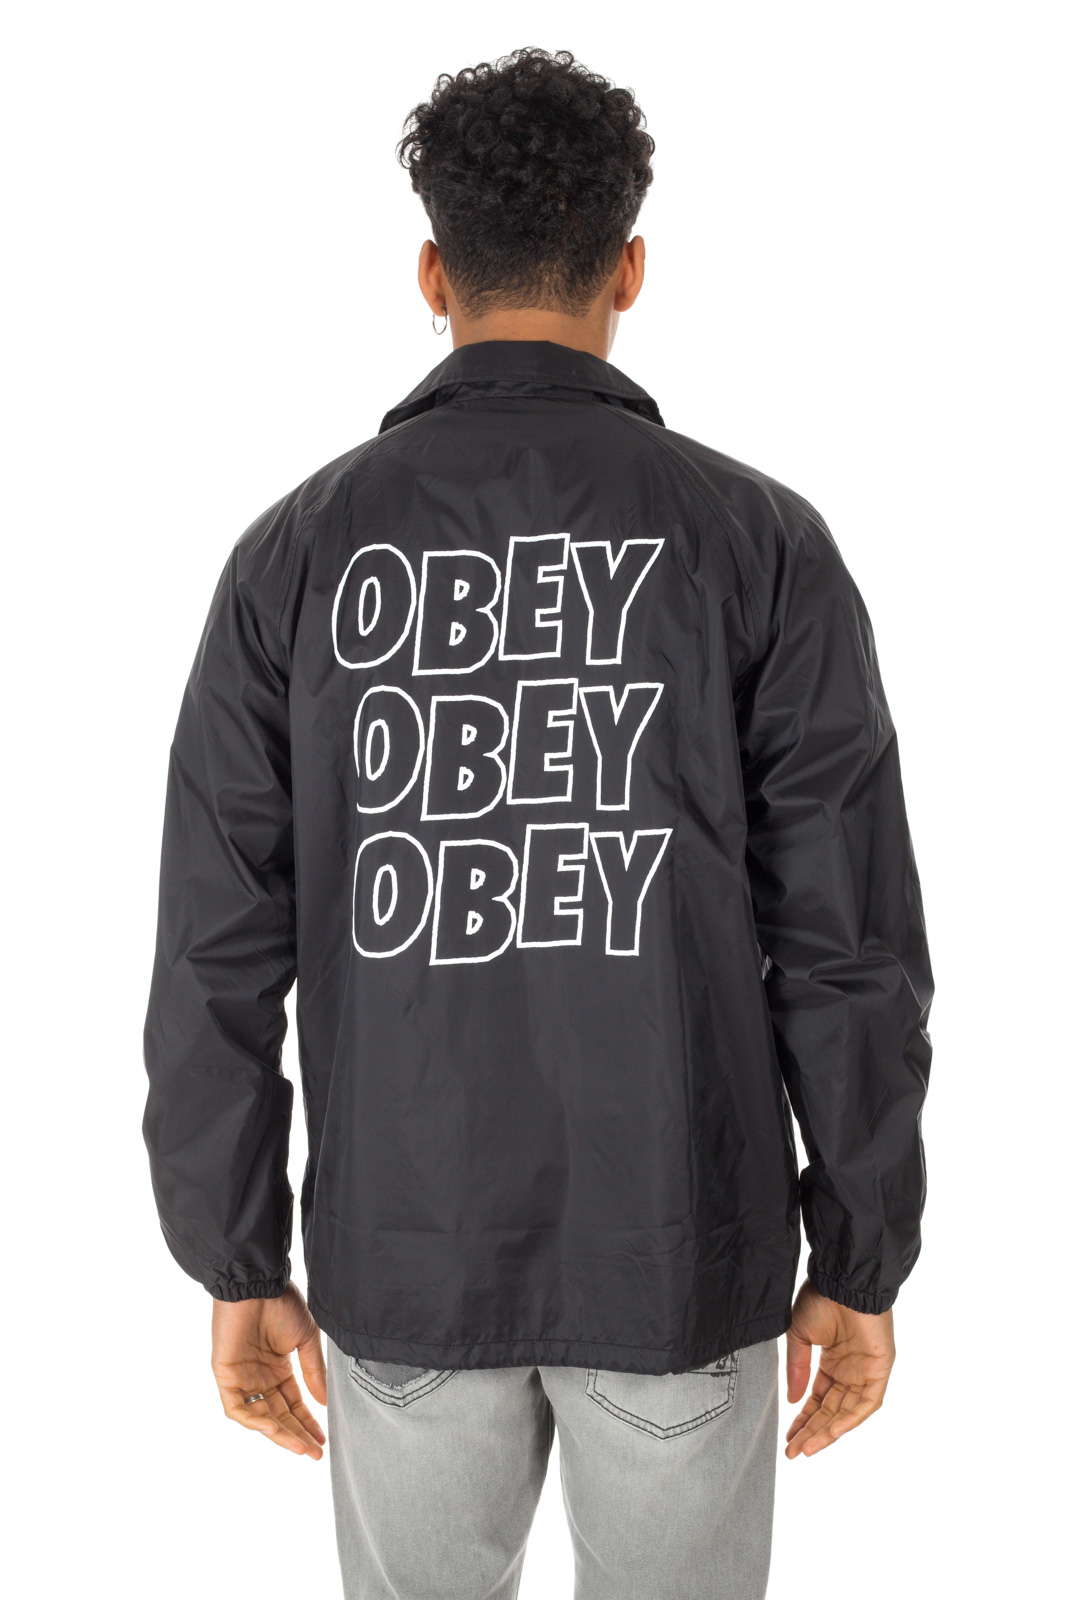 Obey - Jumble Black Jacket